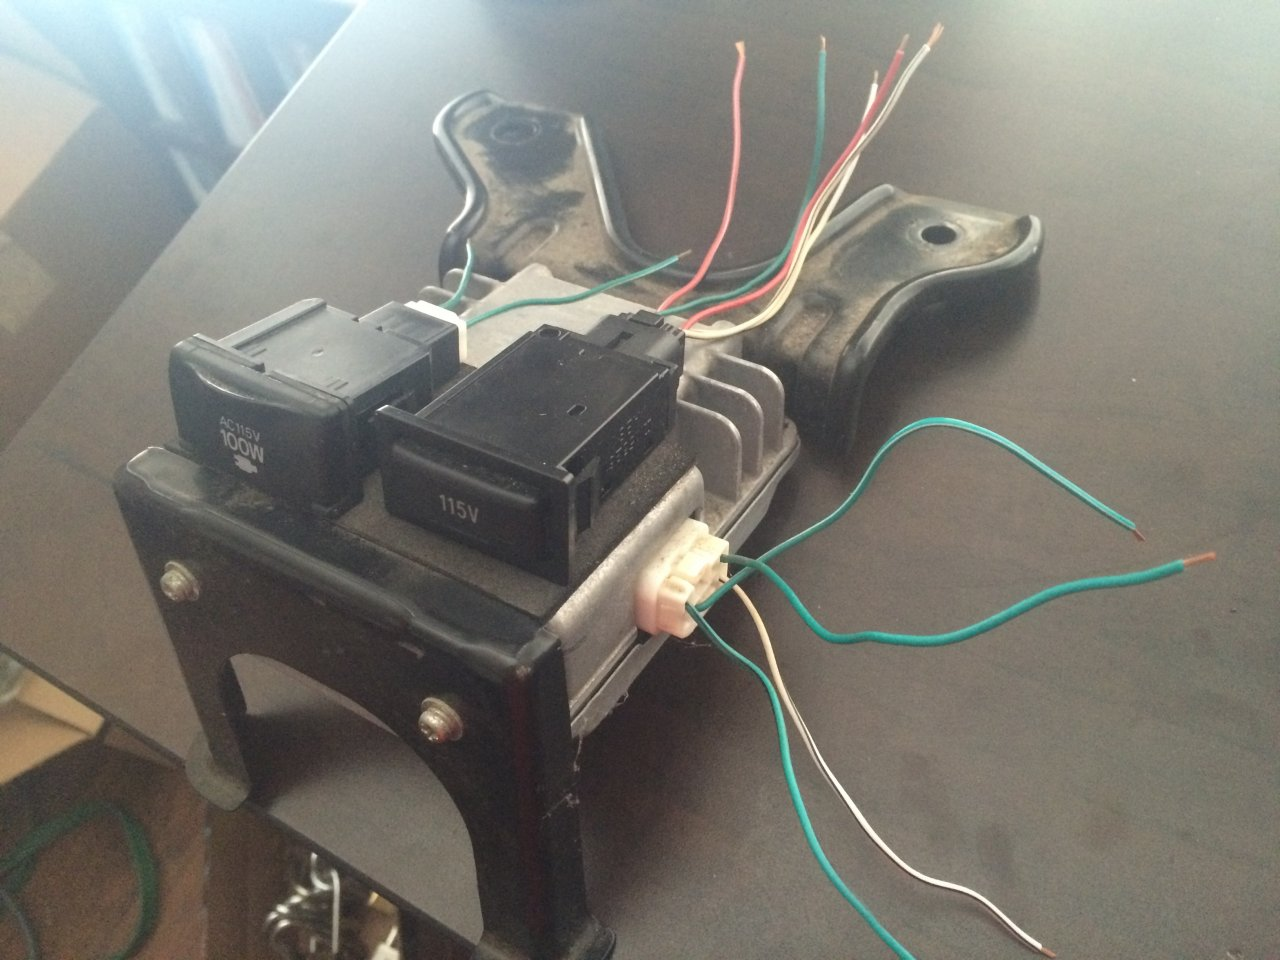 For Sale - SOLD. Toyota Matrix inverter, switch, and outlet | IH8MUD ...